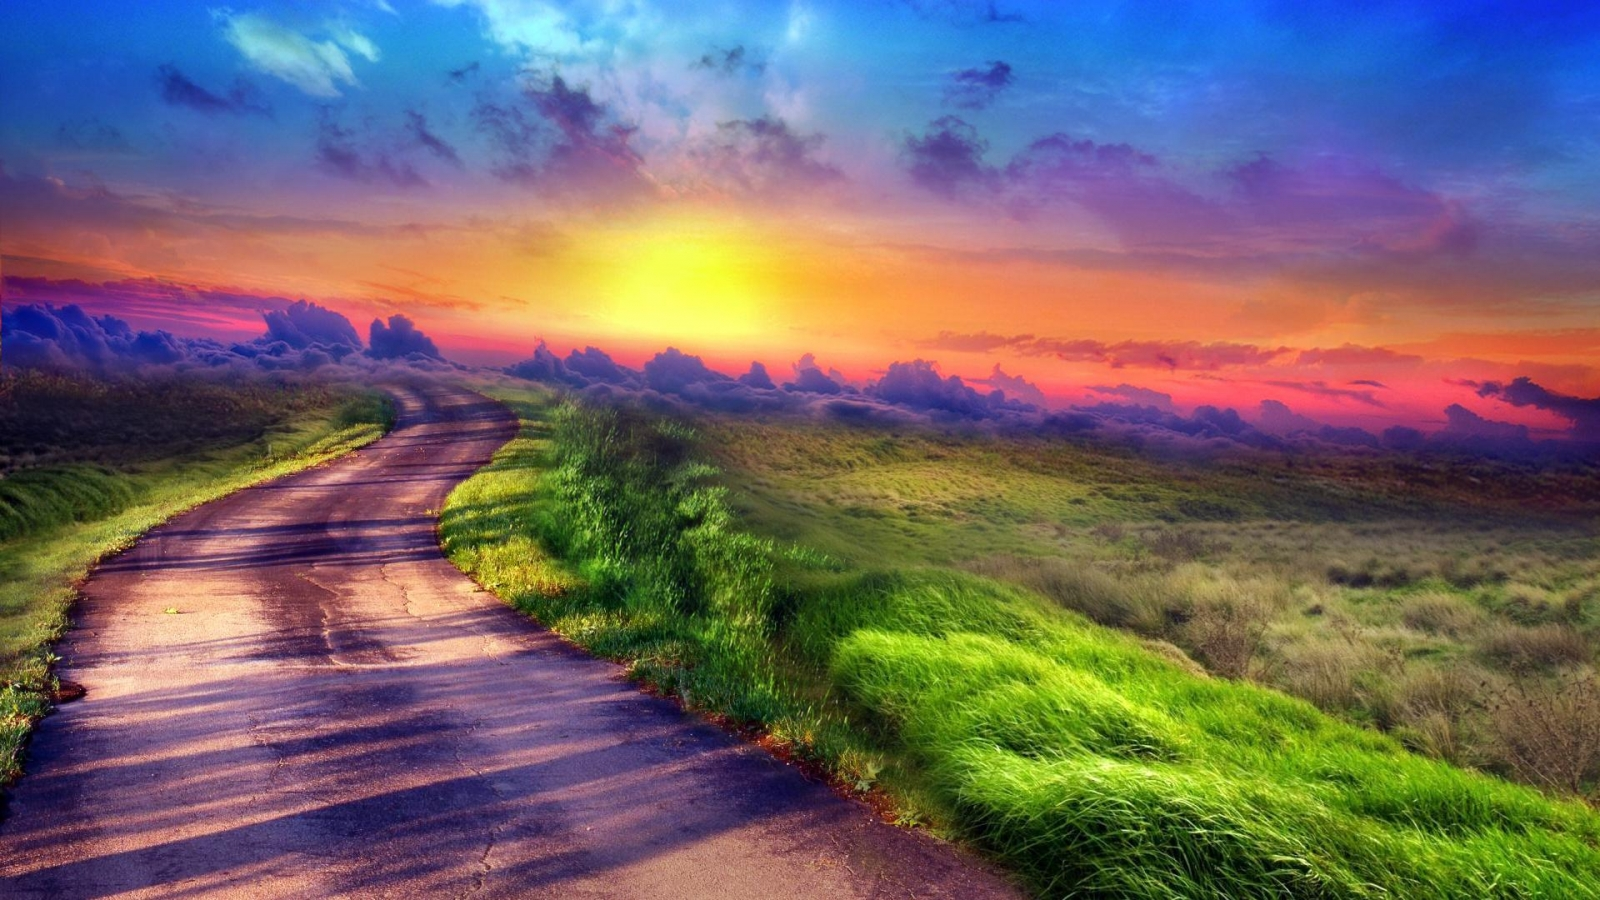 Download Sunset path wallpaper in Nature wallpapers with all 218